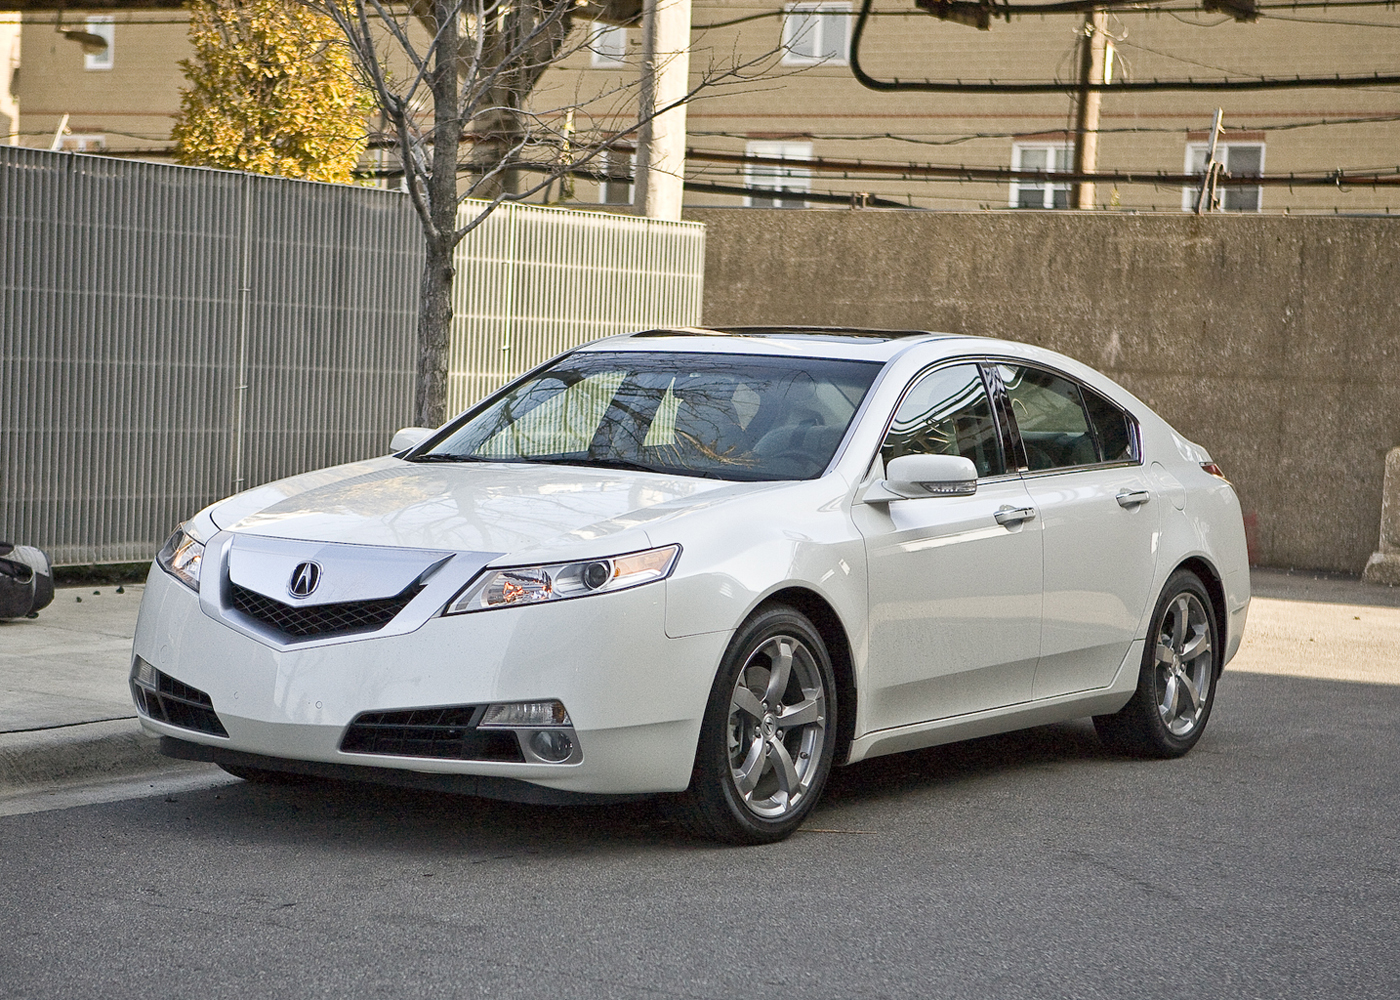 2010 Acura Tl Expert And Consumer Reviews On Easyautosales Com